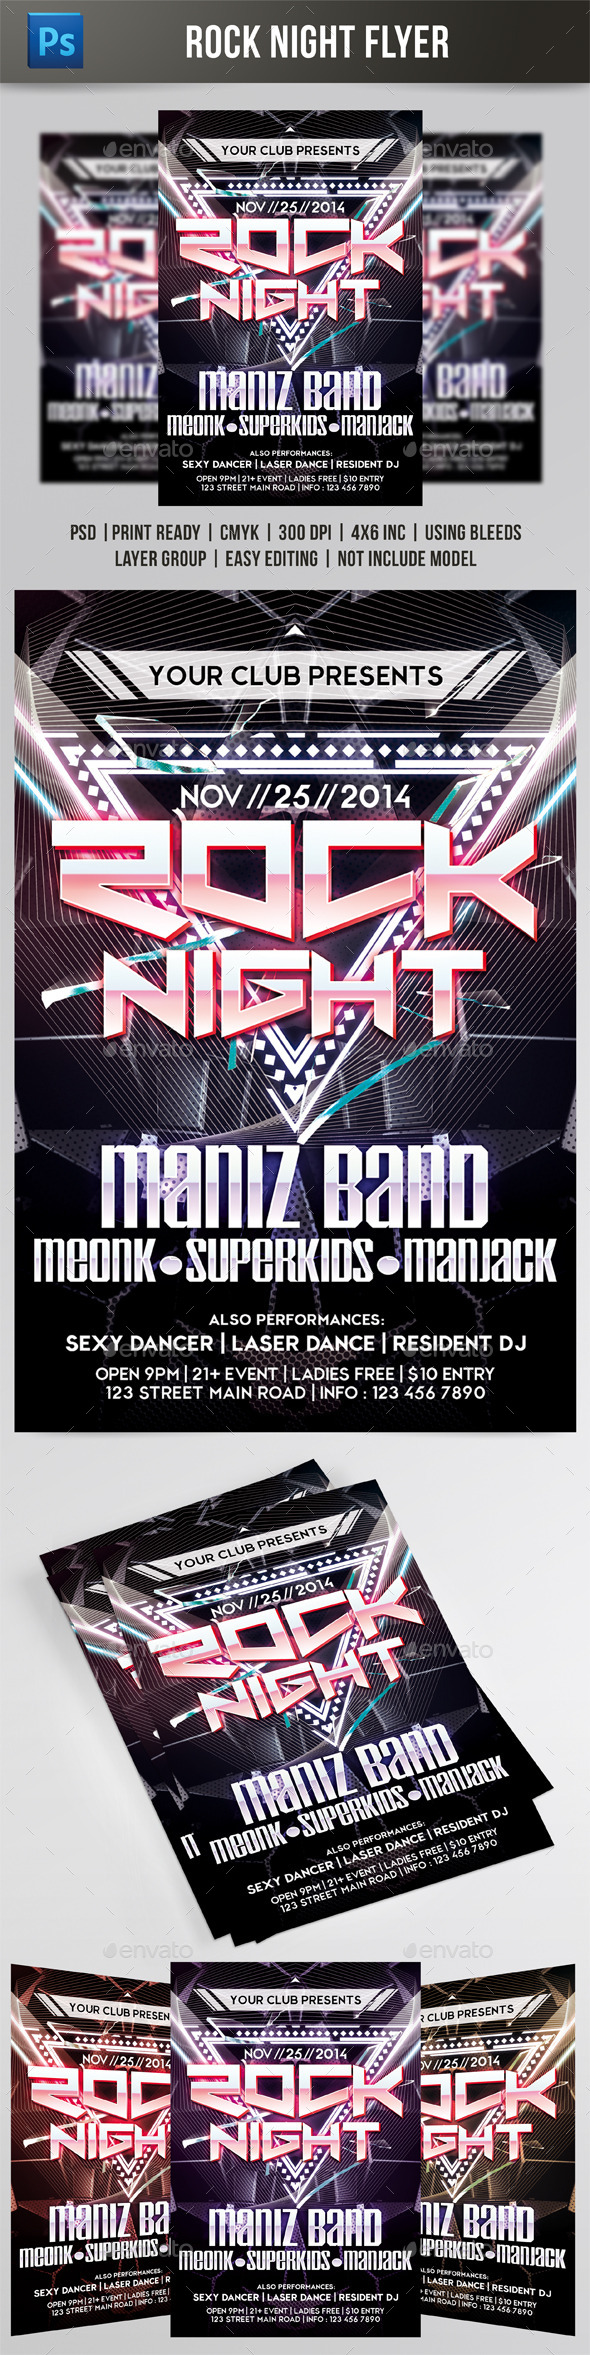 Rock Night Flyer - Events Flyers